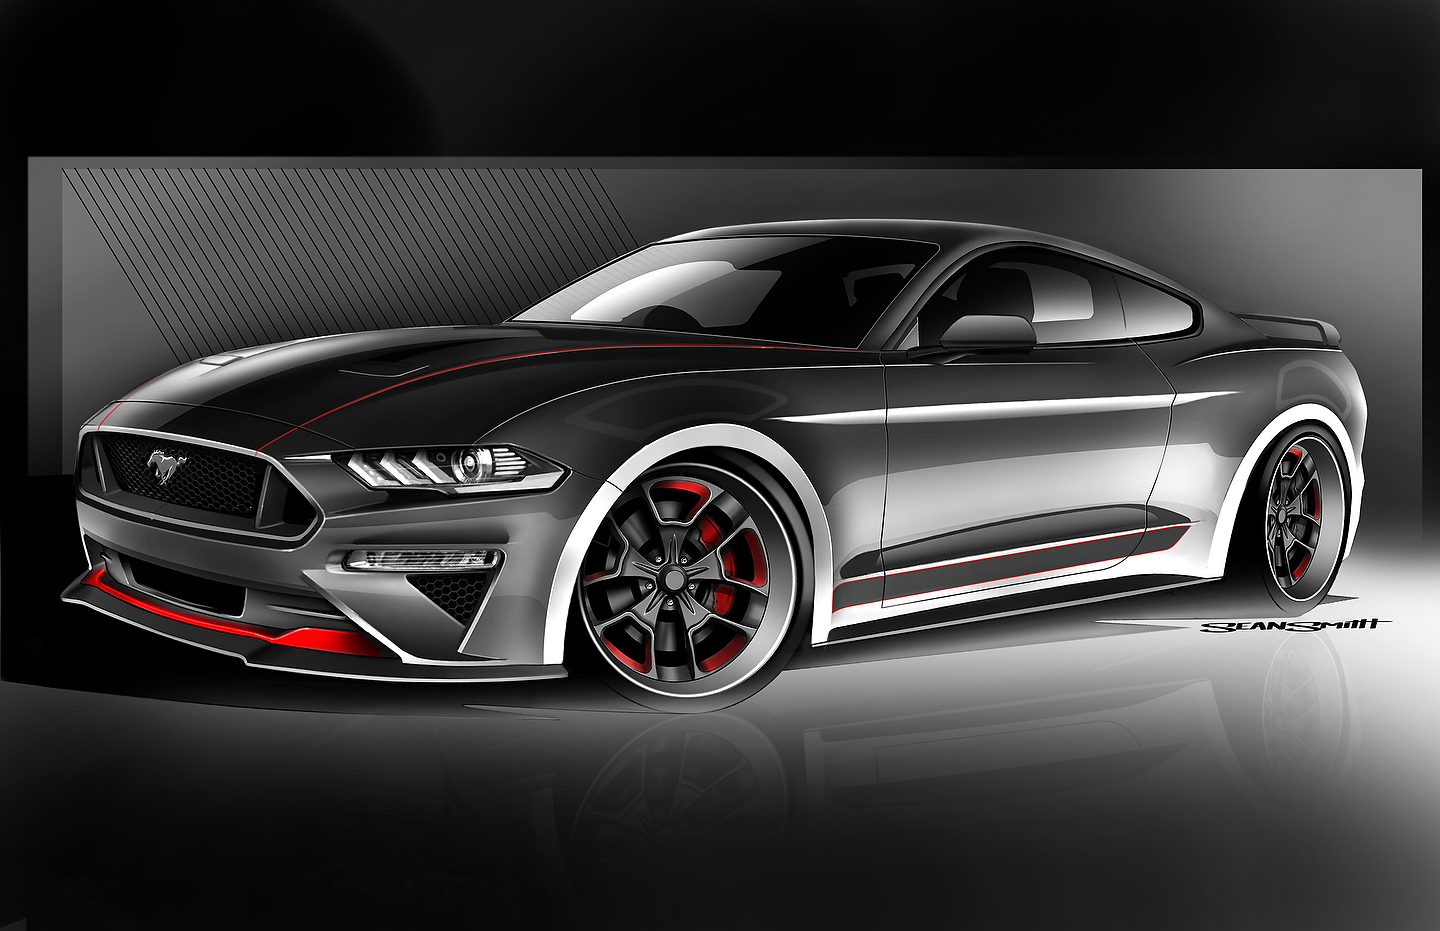 CGS Motorsports 5.0-liter supercharged Mustang GT | Photo: Ford